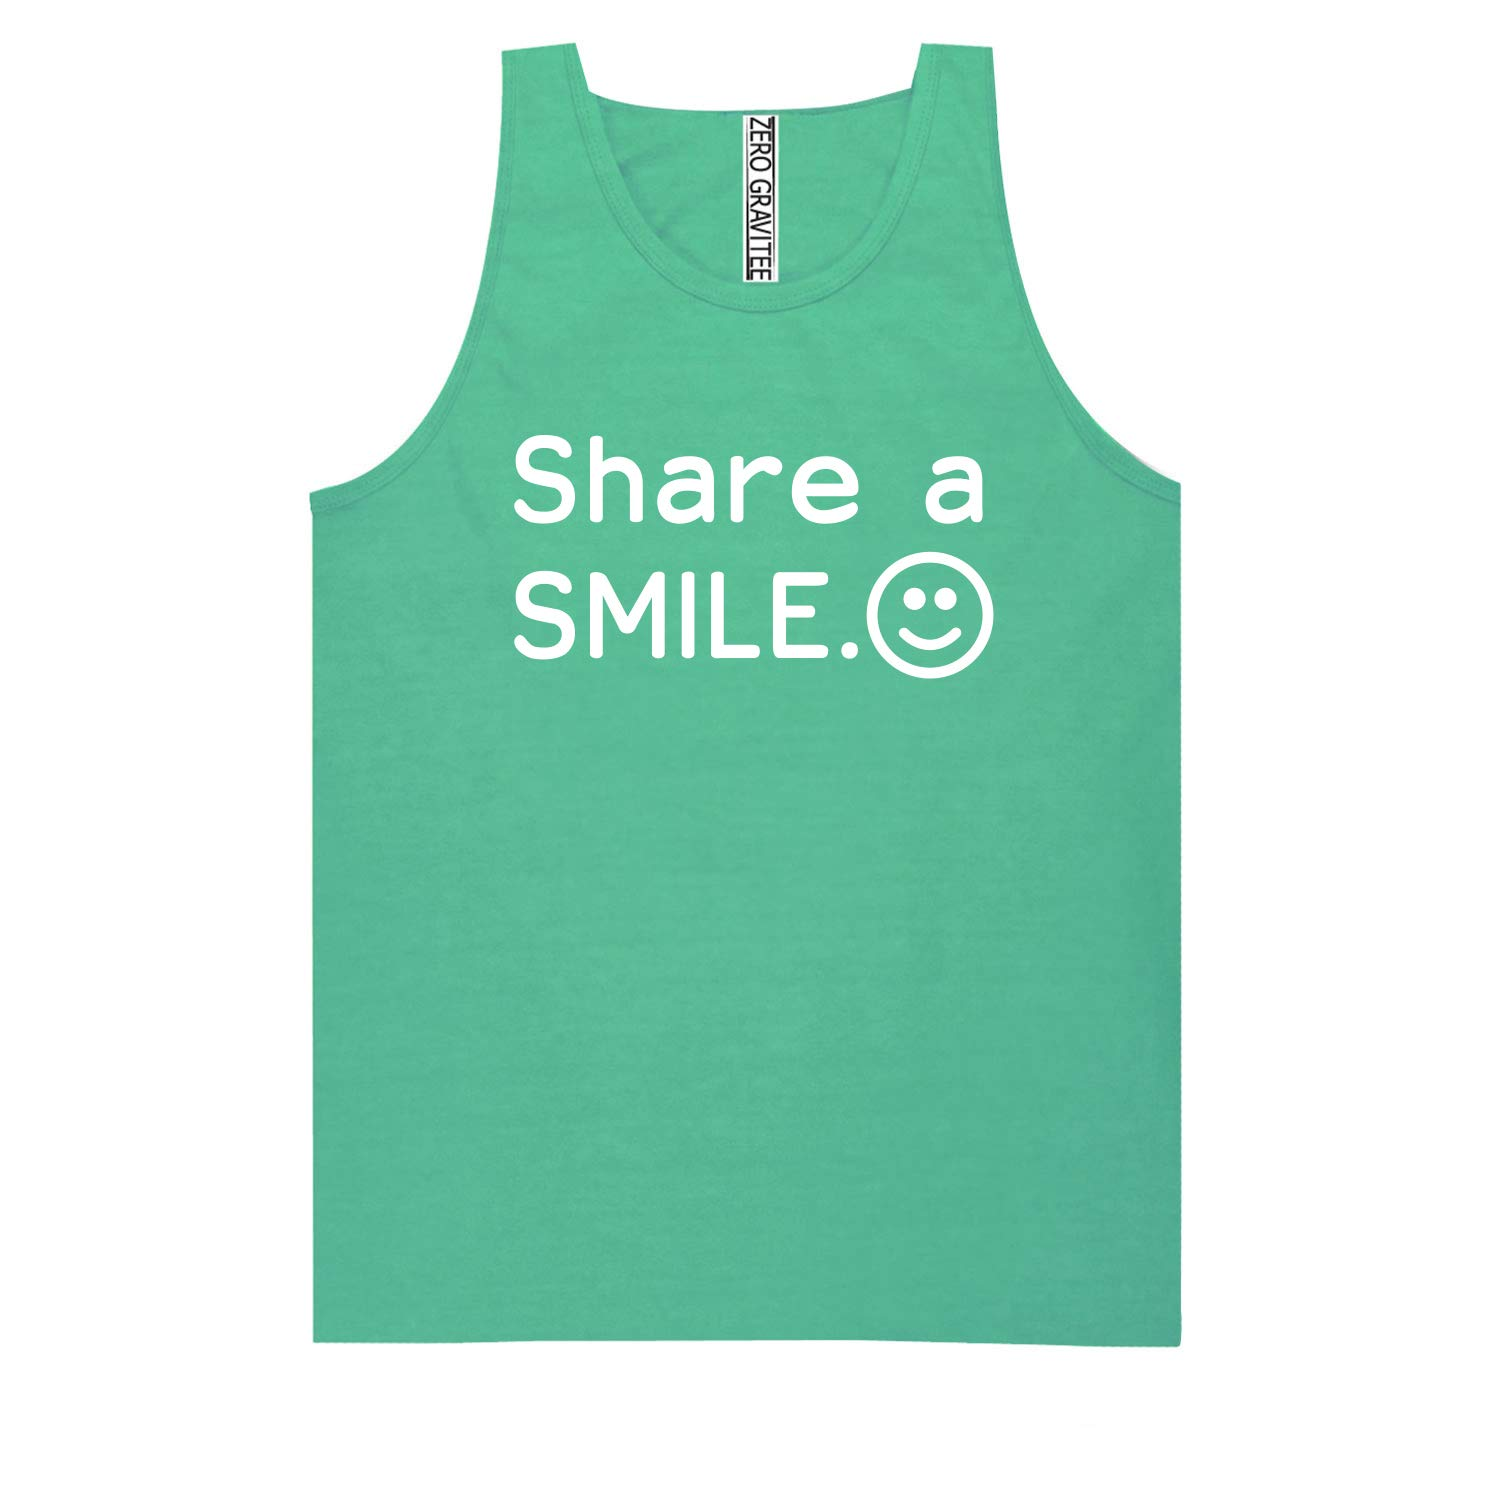 Share A Smile Adult Pigment Dye Tank Top